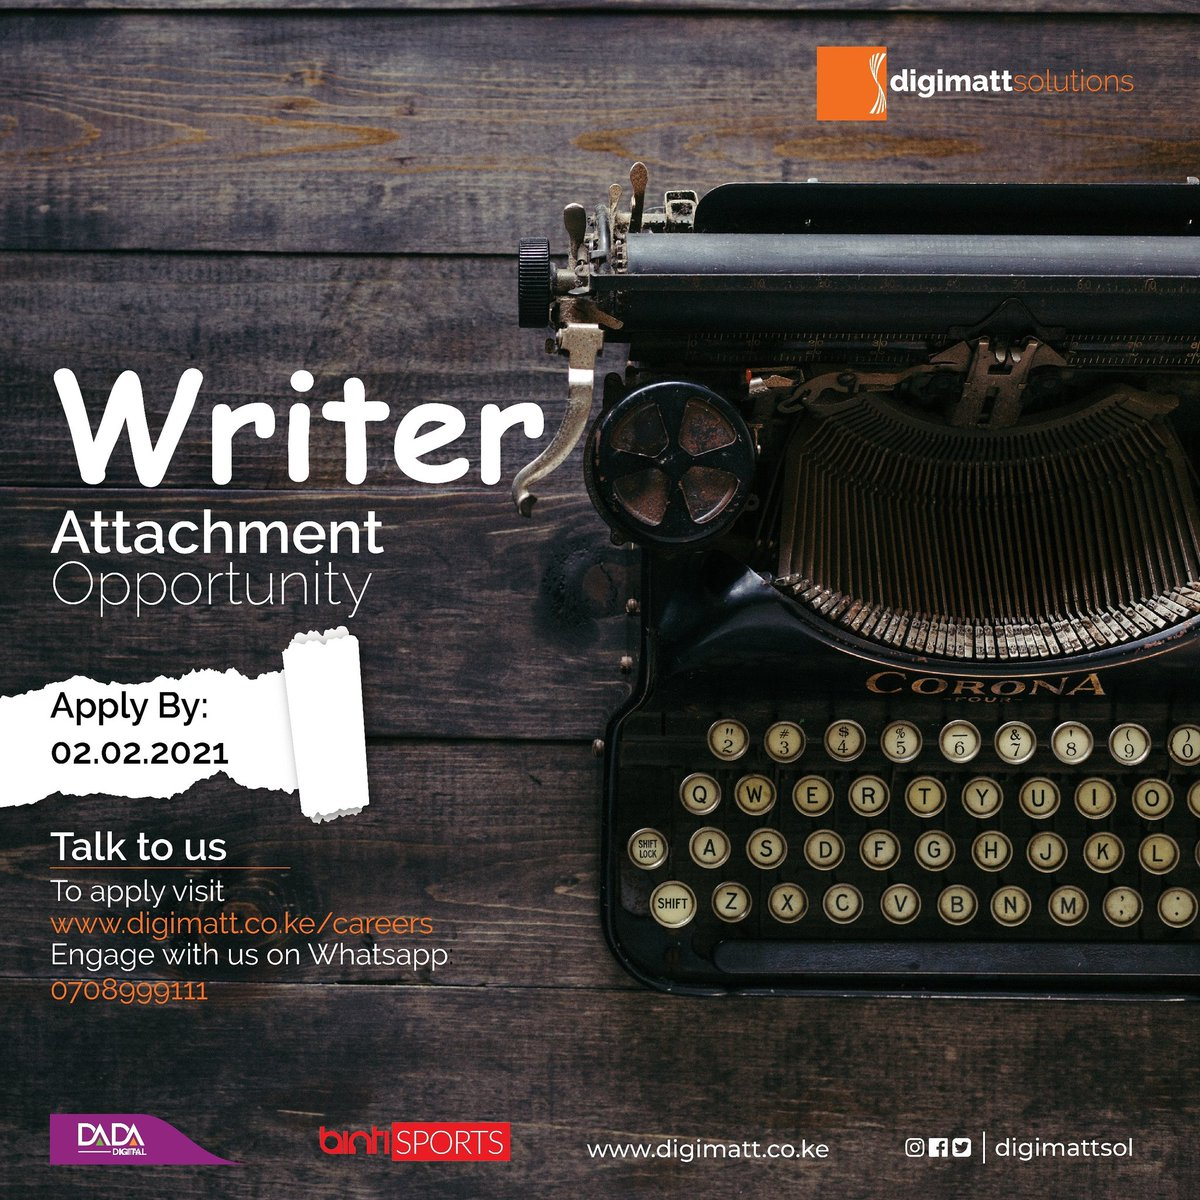 ATTACHMENT OPPORTUNITY!!! To apply click on the link :https://t.co/Yf7y4wUgbL Deadline is 2nd February 2021 So hurry, and APPLY!  #attachment #Writers #IkoKaziKE https://t.co/QoFDJd5NLe